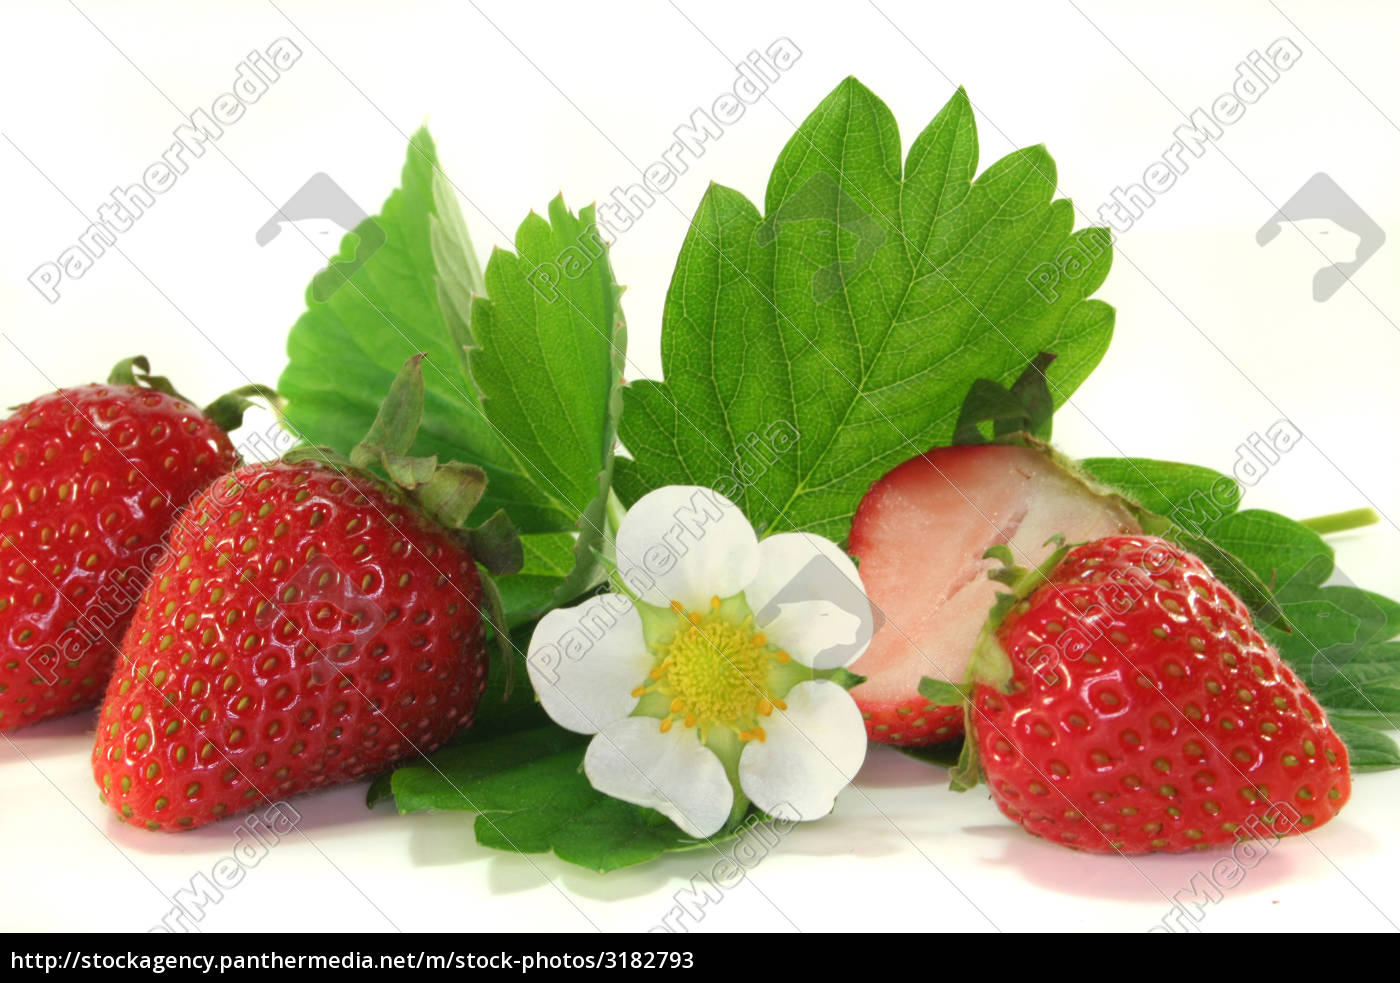 strawberries - 3182793